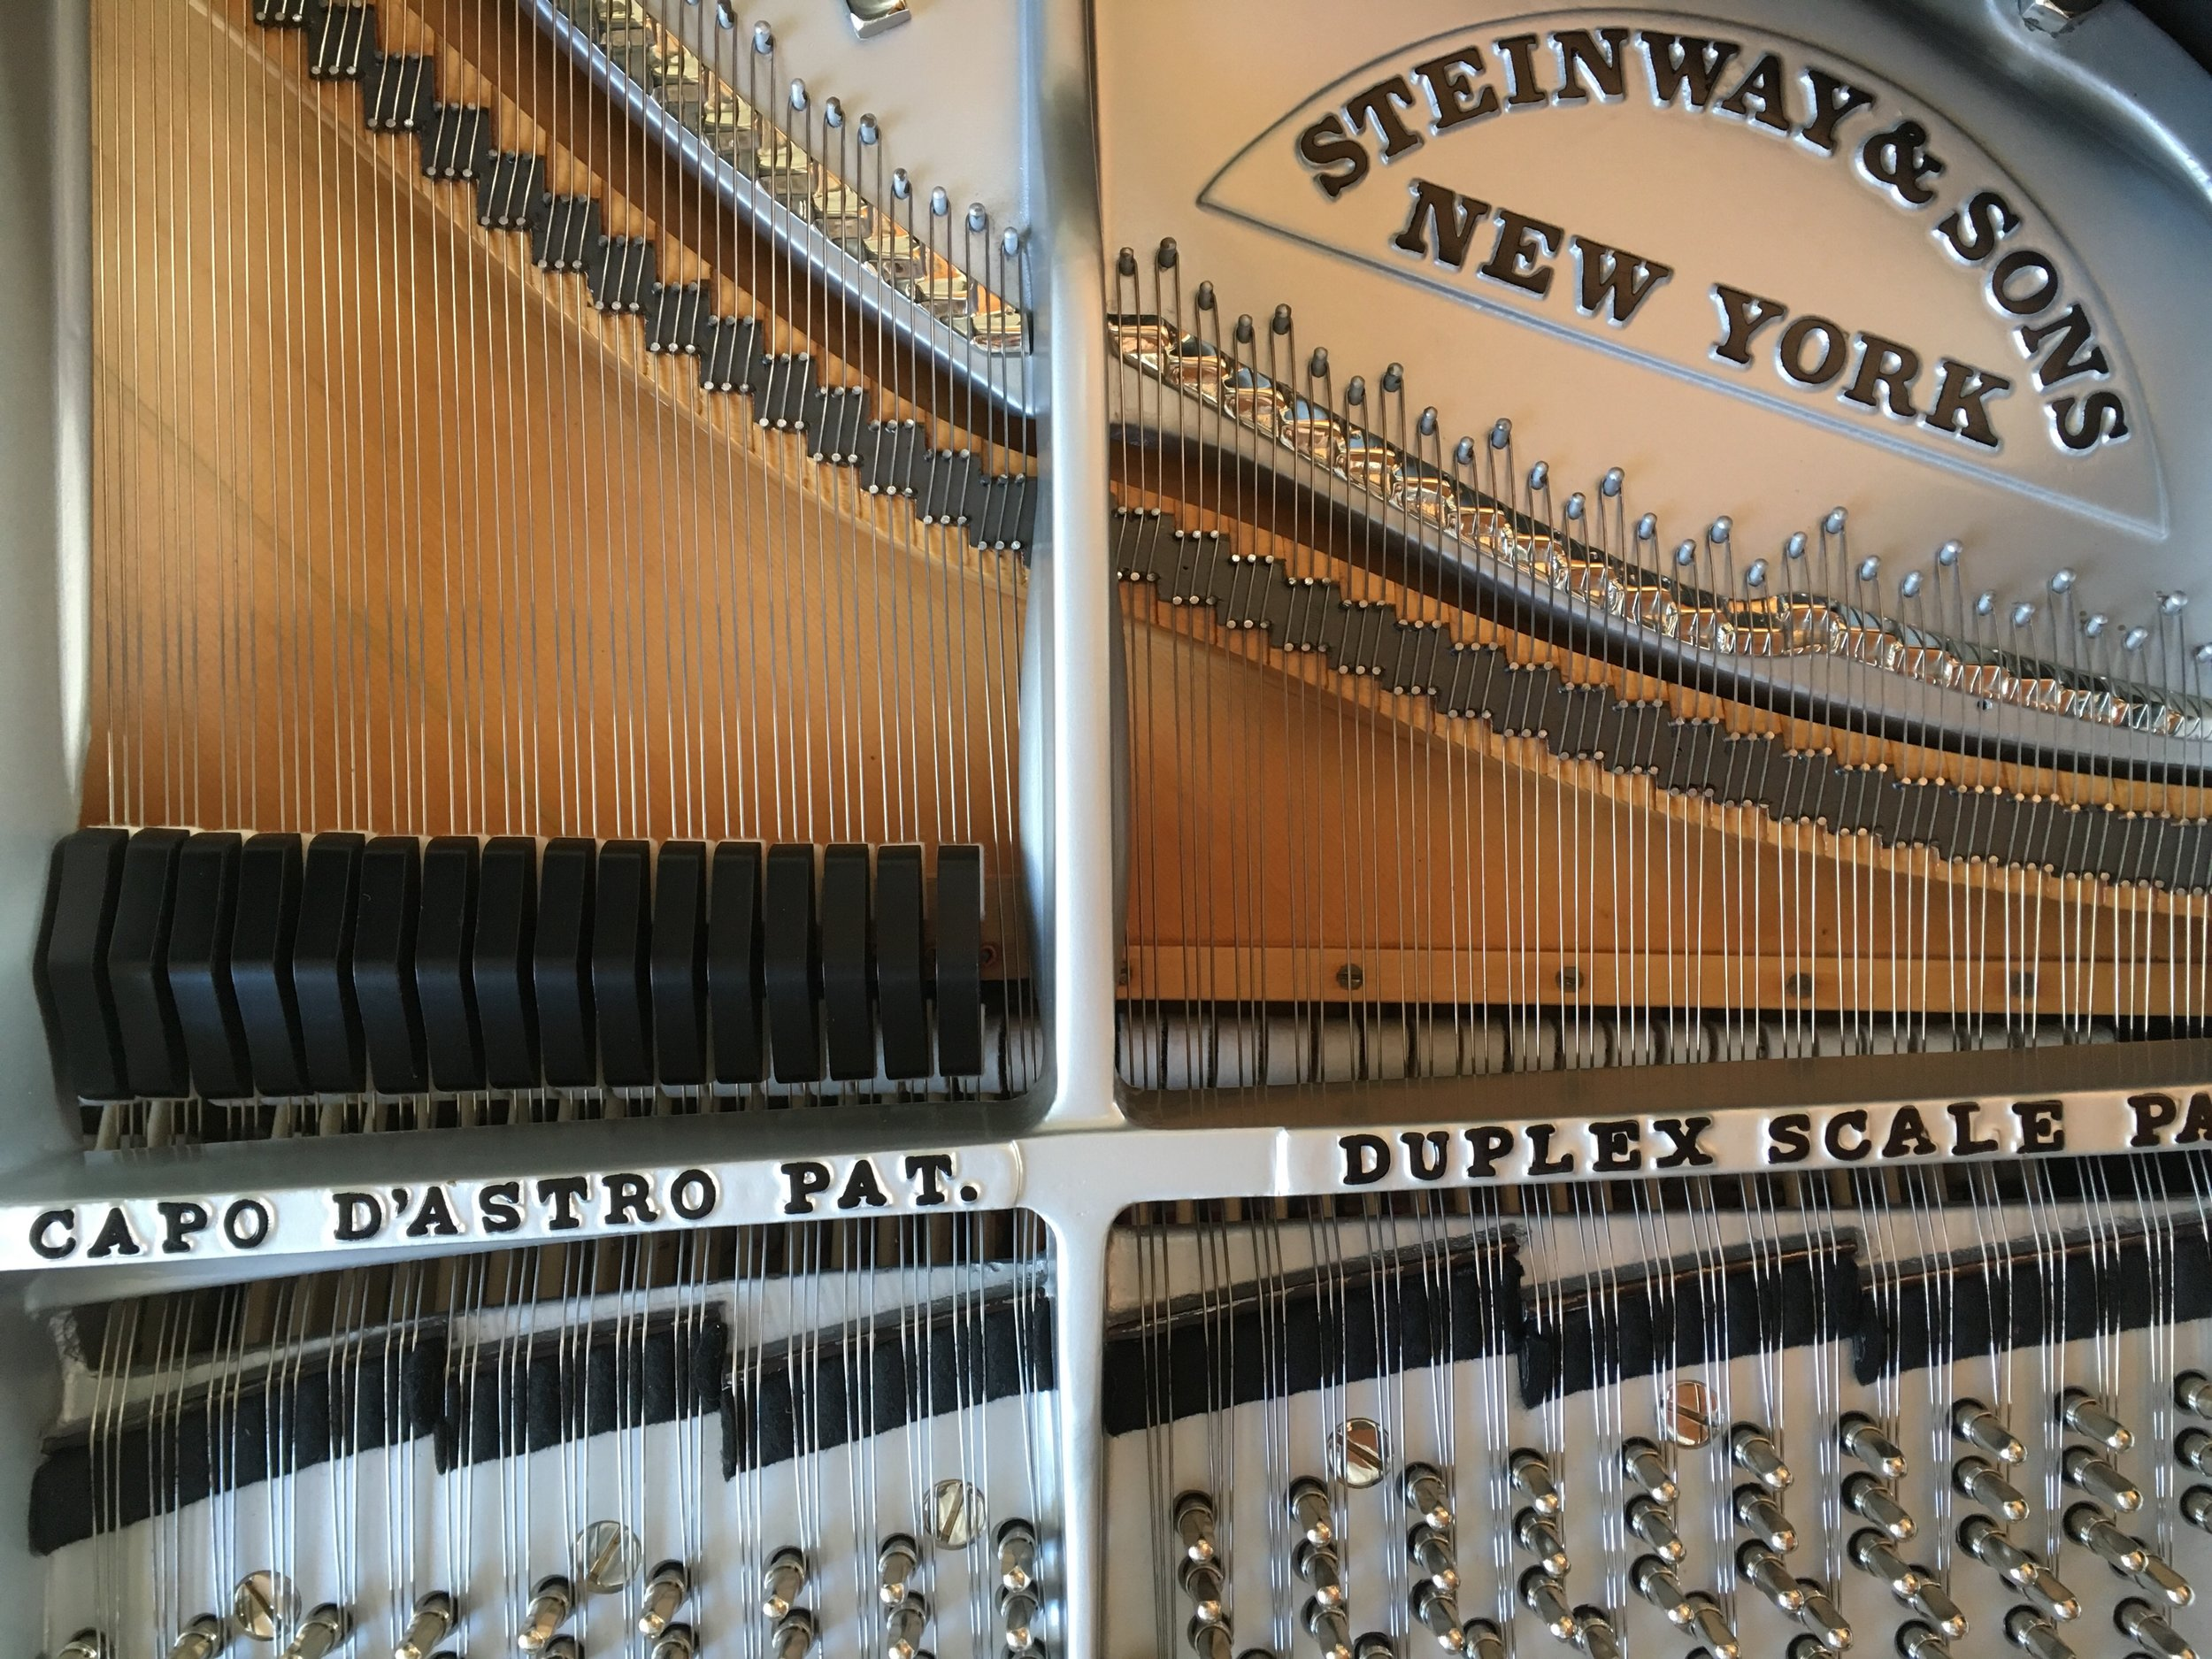 The piano tuning pins can be seen along the bottom edge of the photo above.